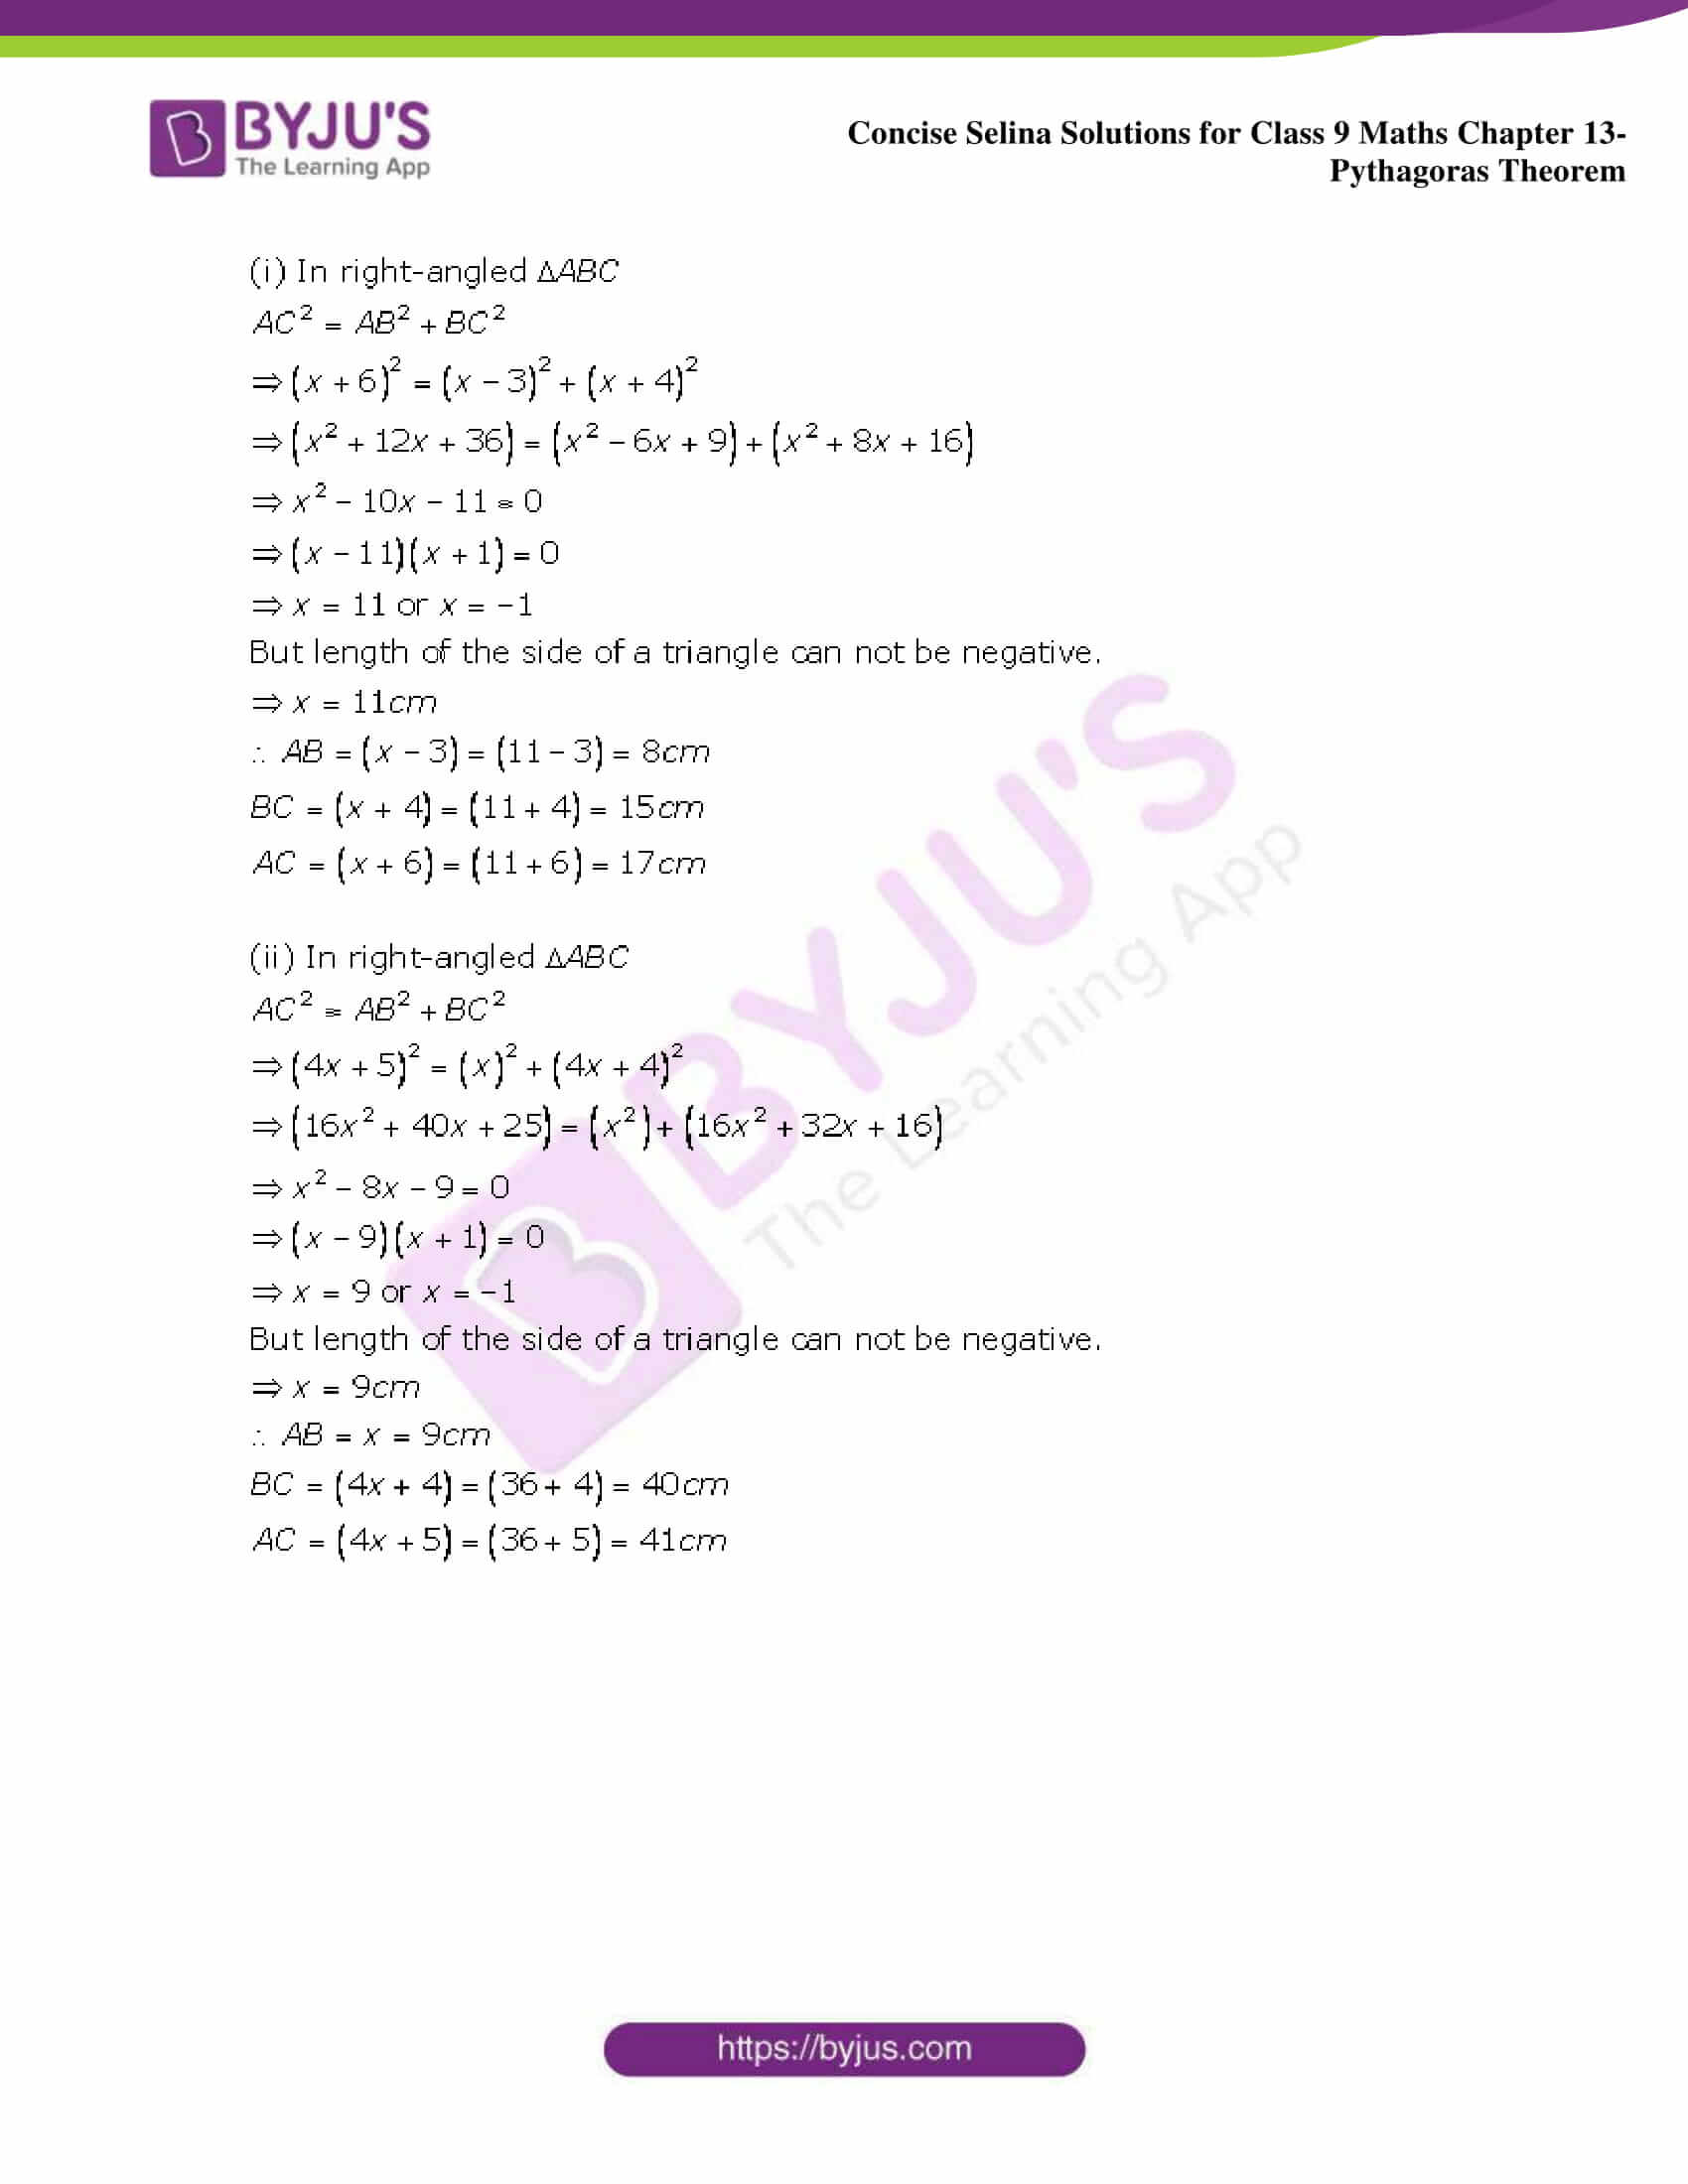 selina Solutions for Class 9 Maths Chapter 13 part 09